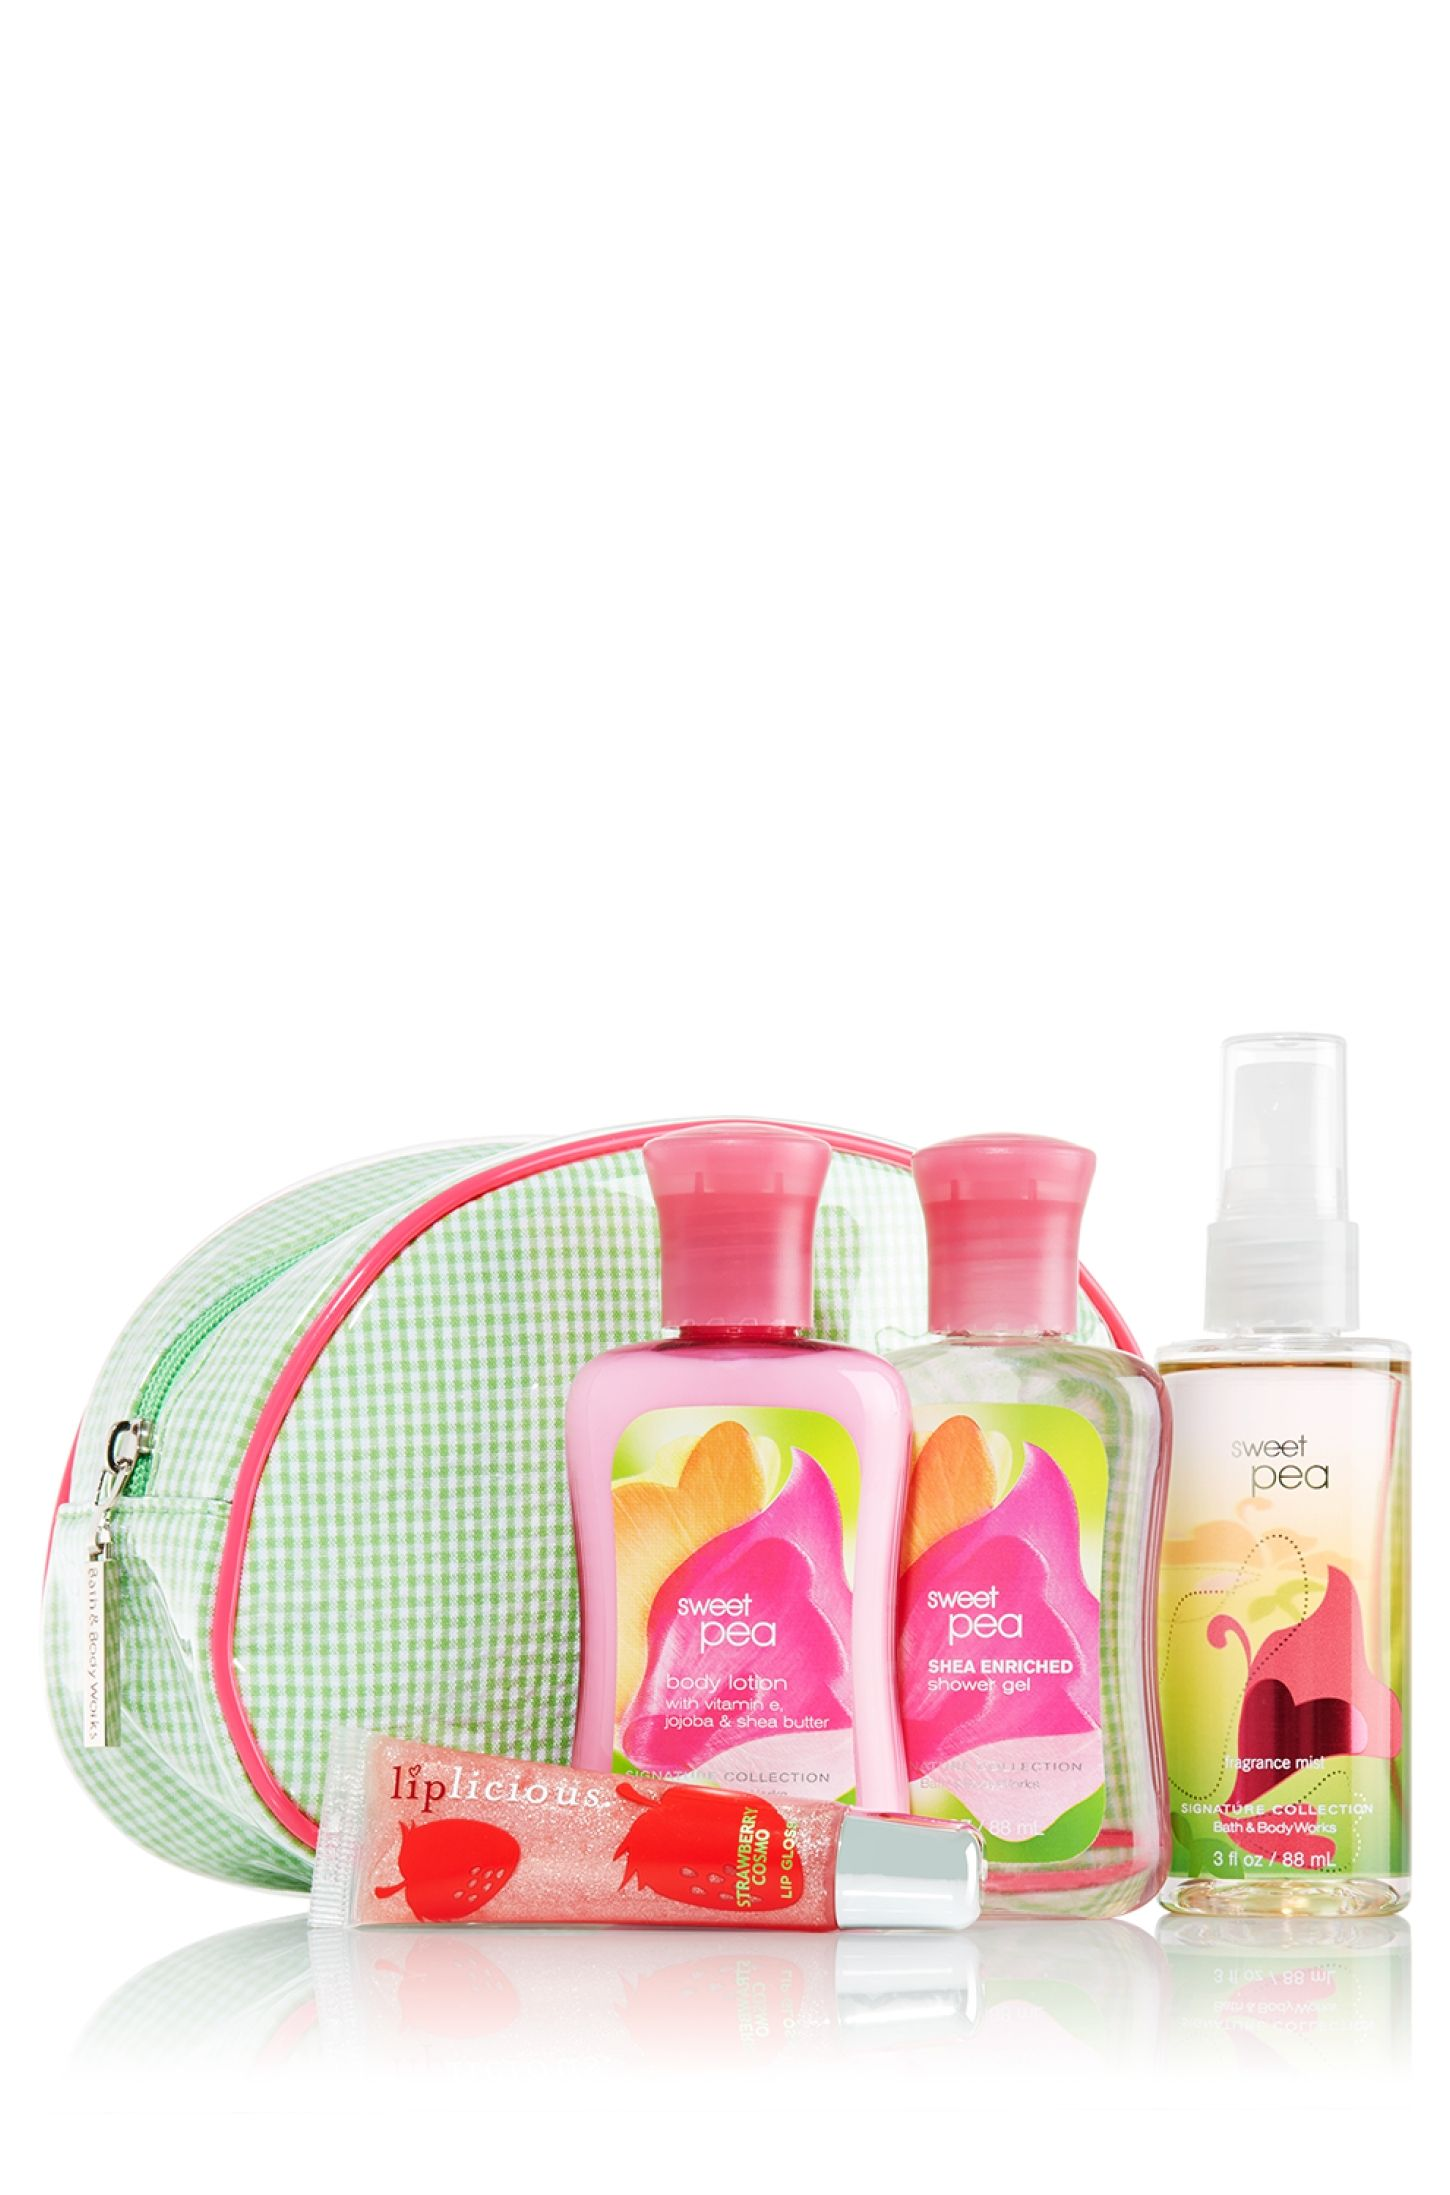 We sure hope the easter bunny brings us a cute gift set from bath body works negle Image collections